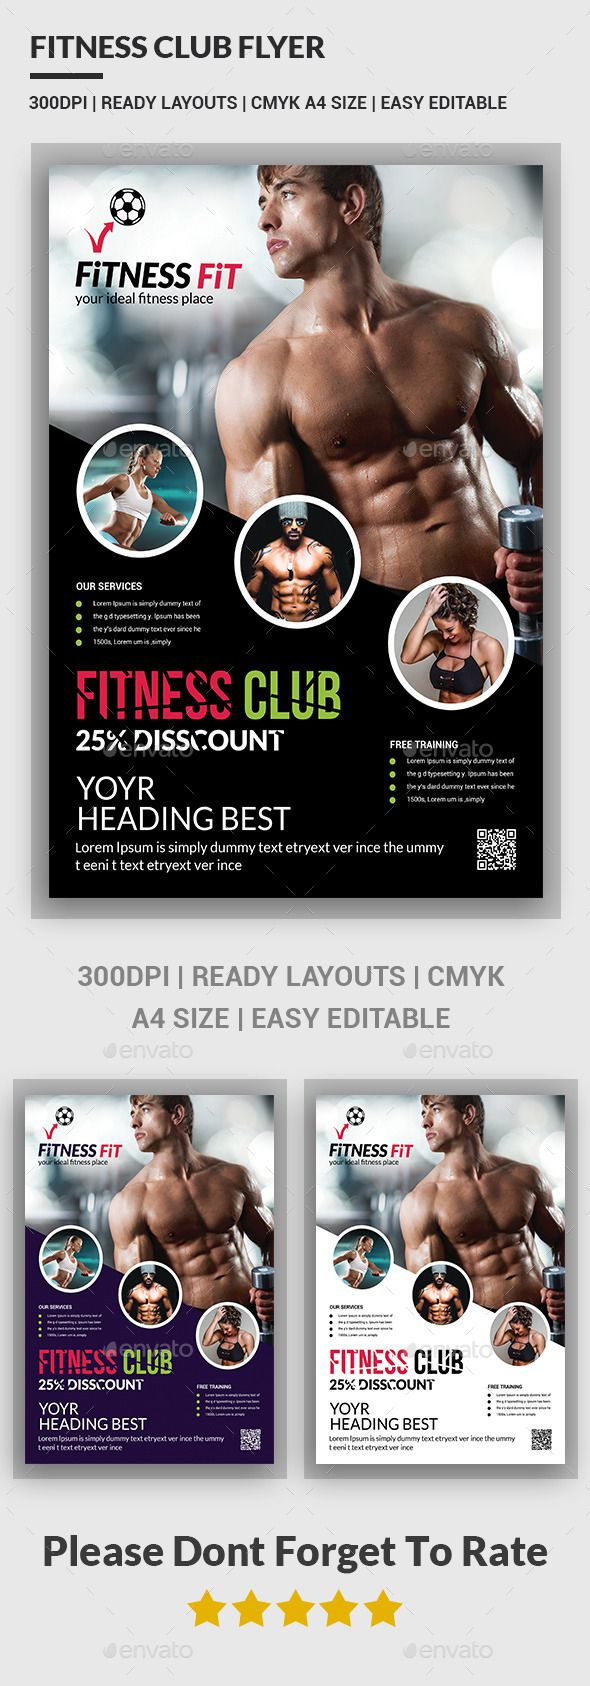 Fitness Flyer - Gym Flyer Template #design Download: http://graphicriver.net/item/fitness-flyer-gym-flyer-templates-/12644383?ref=ksioks